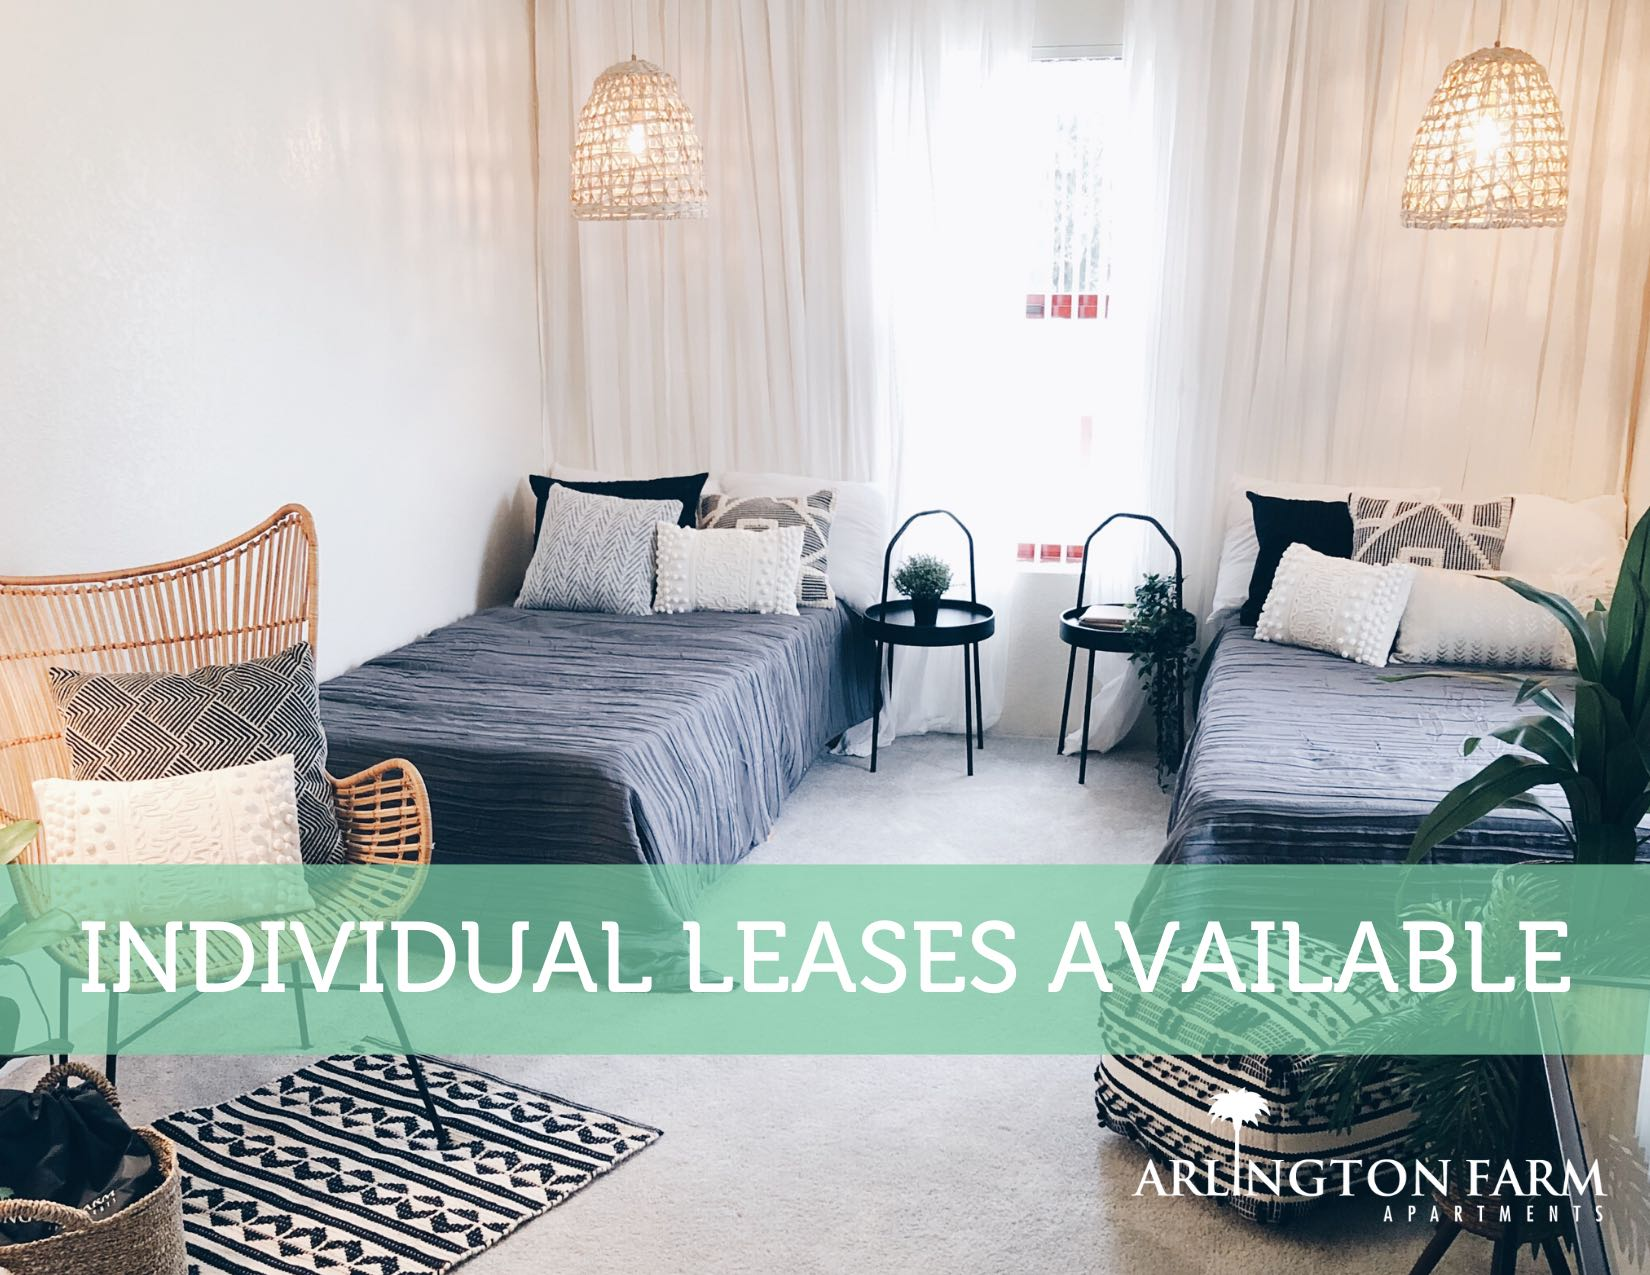 Individual Leases Available